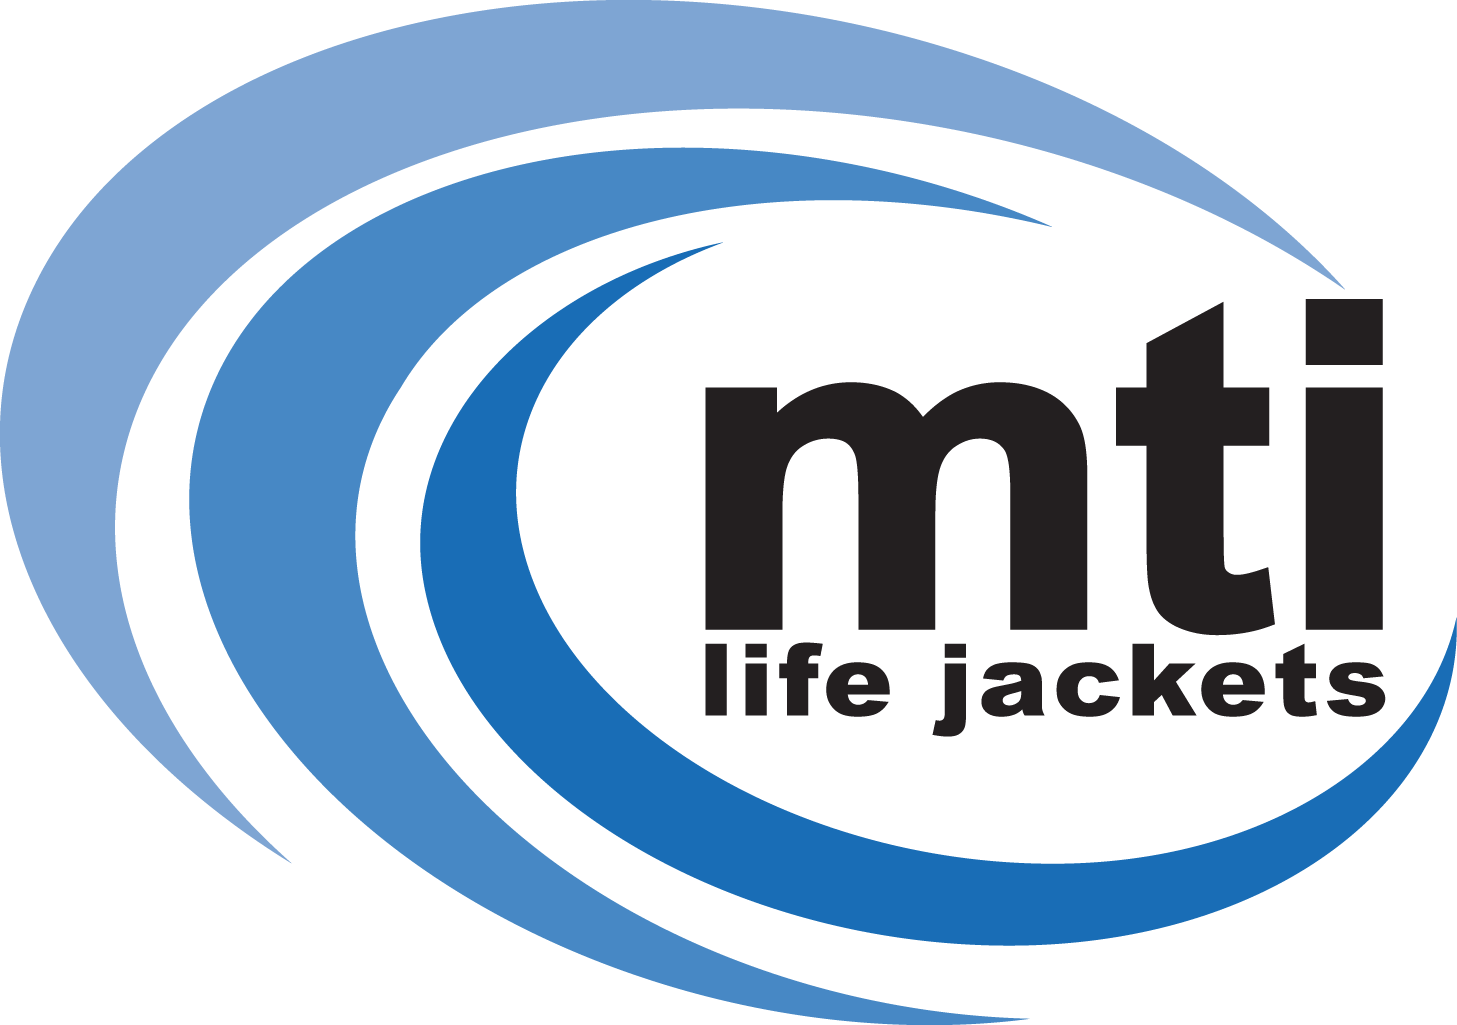 MTI Adventurewear - Canoe, Kayak, Raft, Sail or SUPMTI makes a life vest for it. Founded in 1991 by Yoshi and Dorothy Takashina outside of Boston, MTI is still a family owned company based near historic Plymouth, Massachusetts.